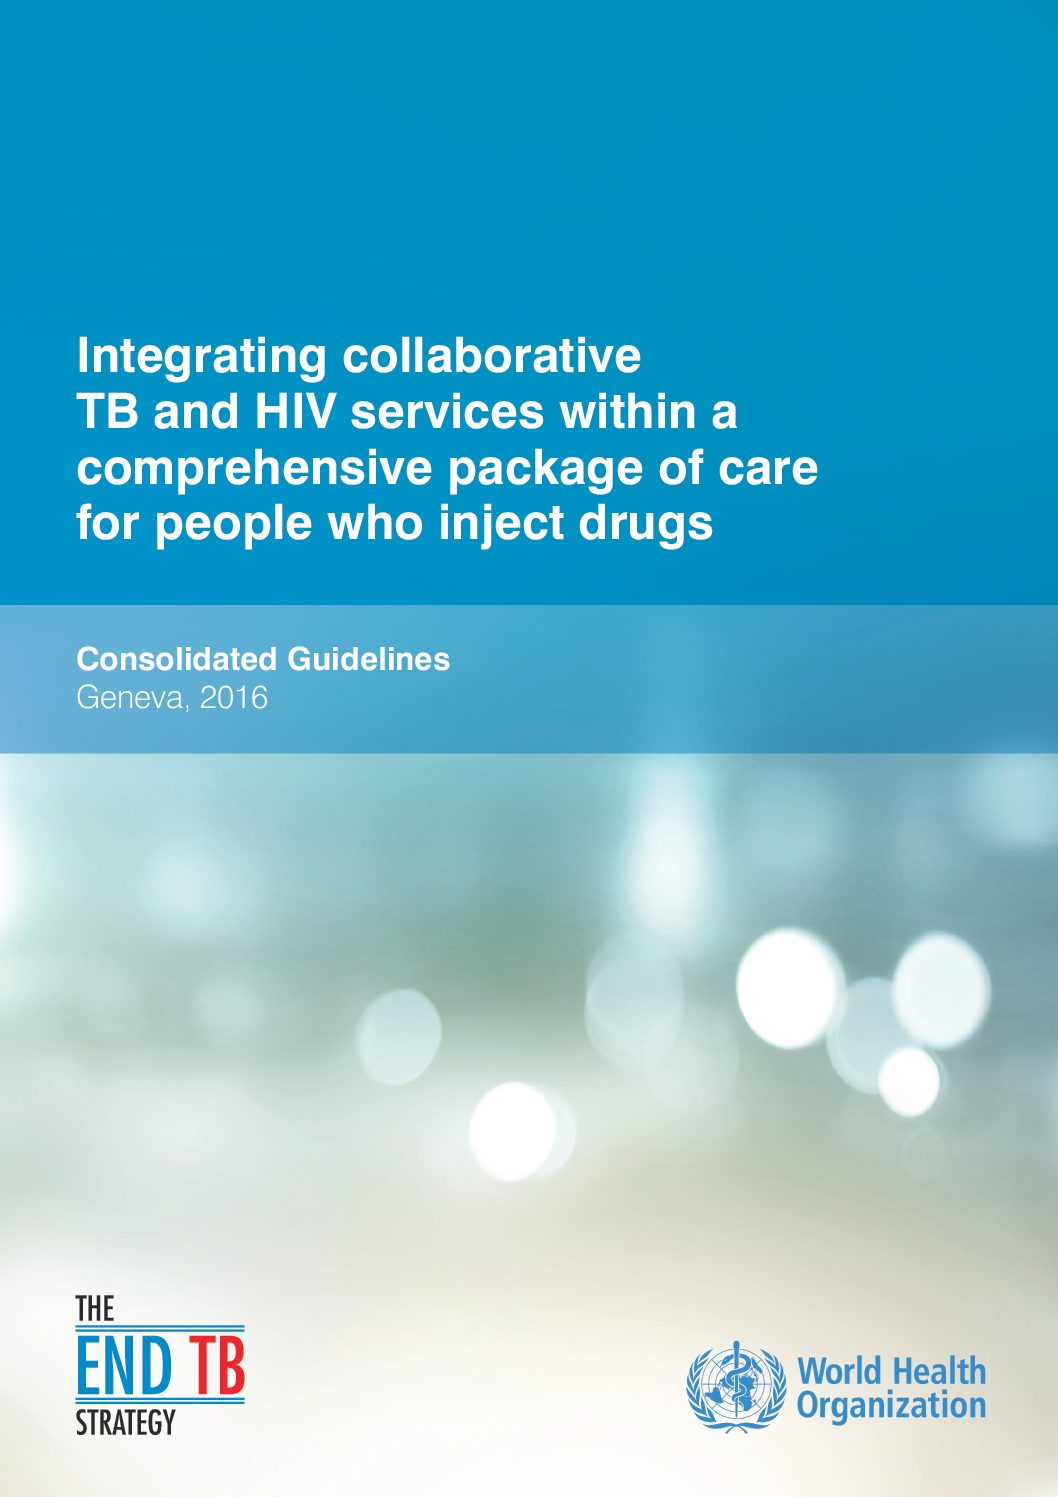 Integrating collaborative TB and HIV services within a comprehensive package of care for people who inject drugs.